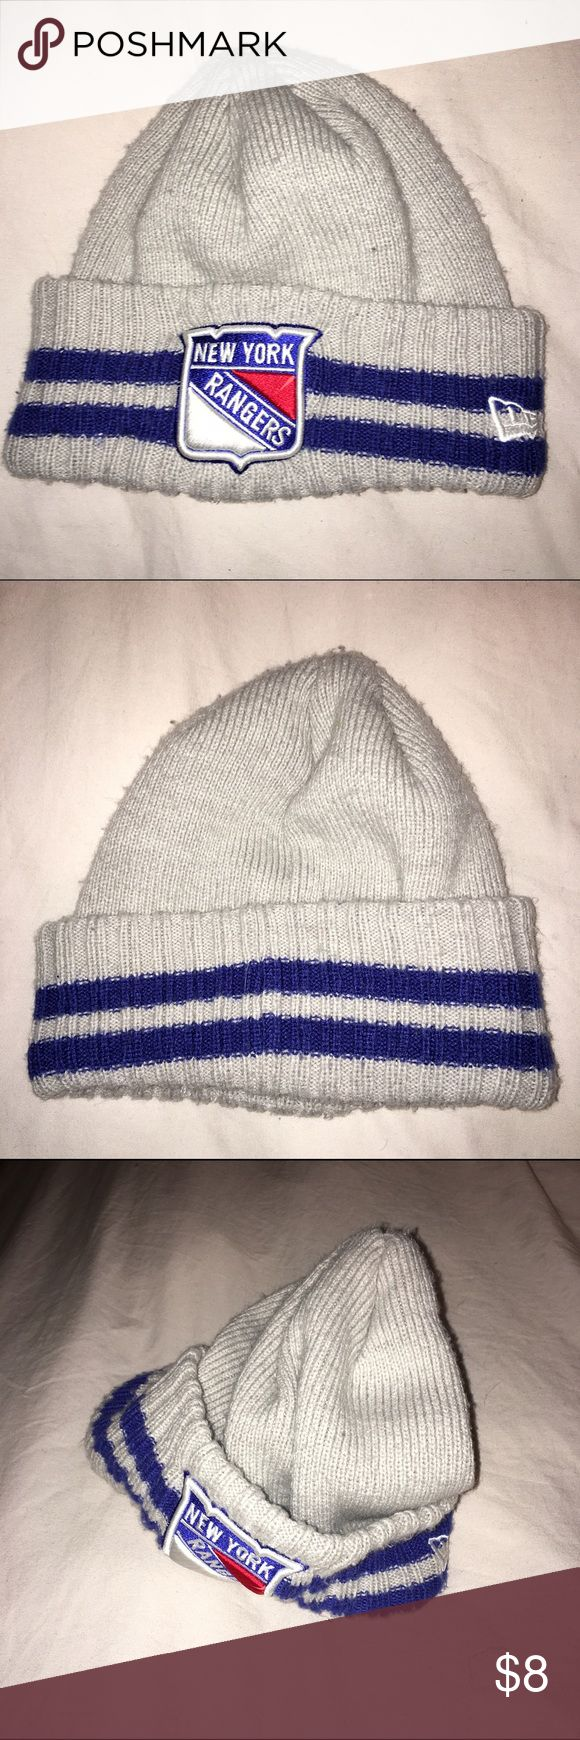 New York Rangers sports stocking cap hat Awesome stocking cap for the sports fan. Grey with navy blue stripes and a great New York Rangers patch. rangers Accessories Hats